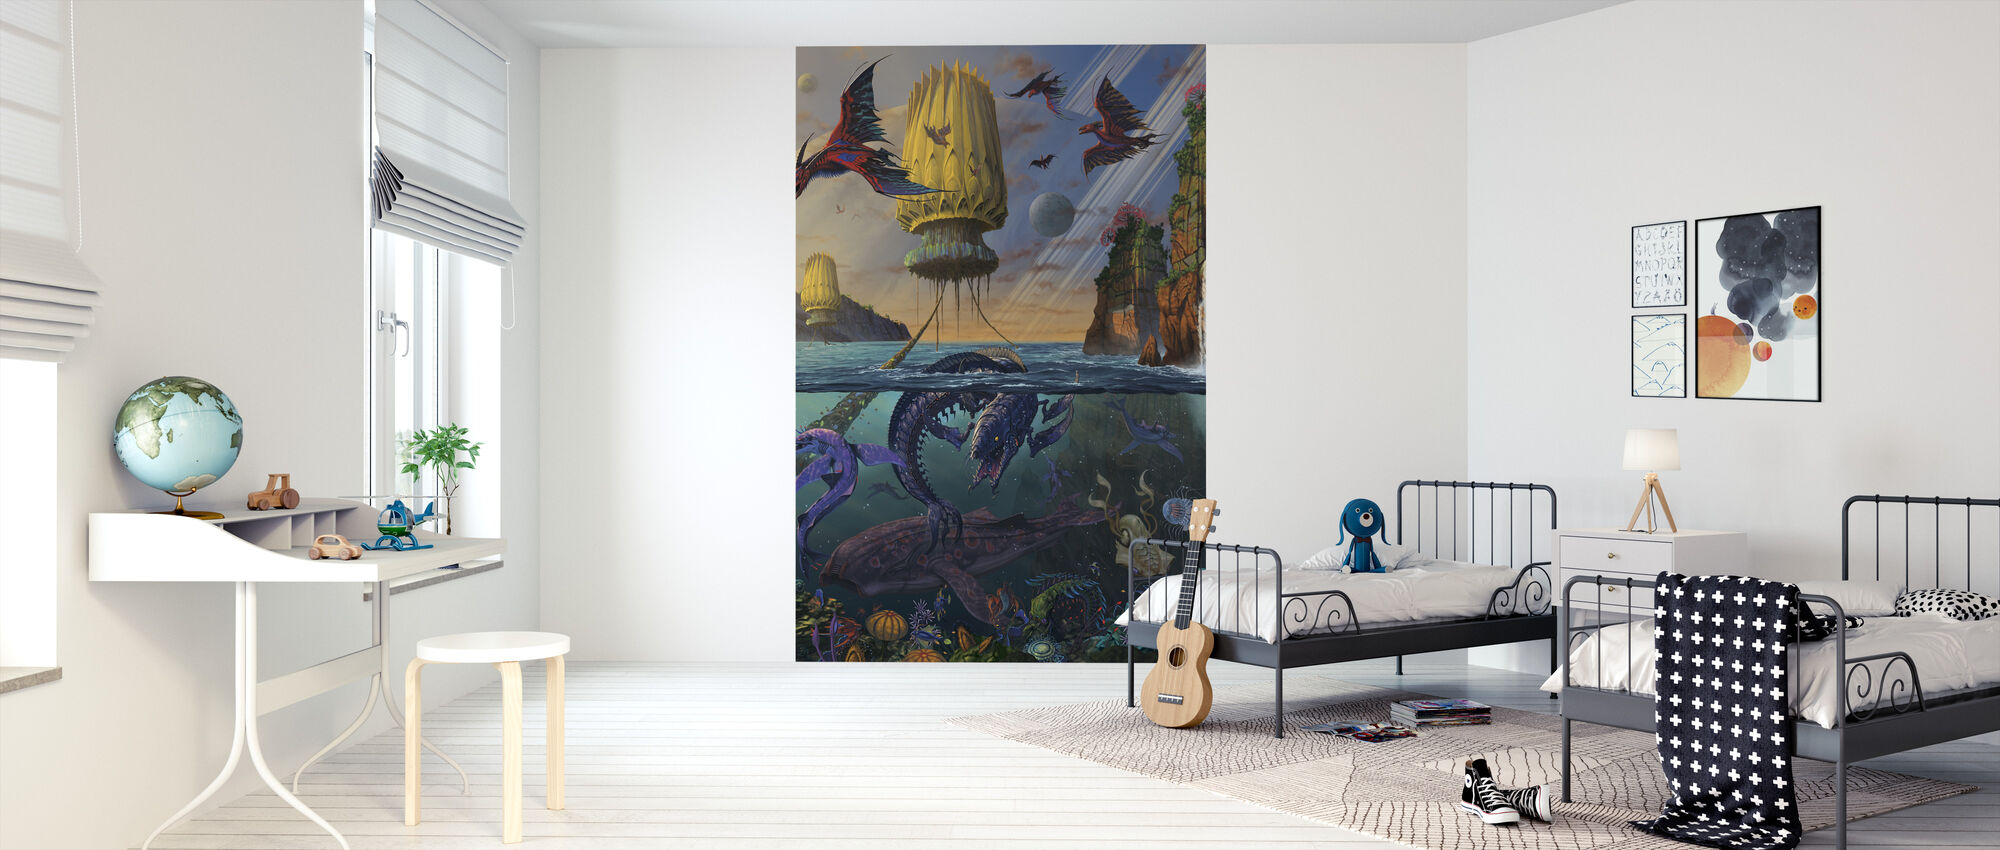 Cyris Undiscovered - Wallpaper - Kids Room